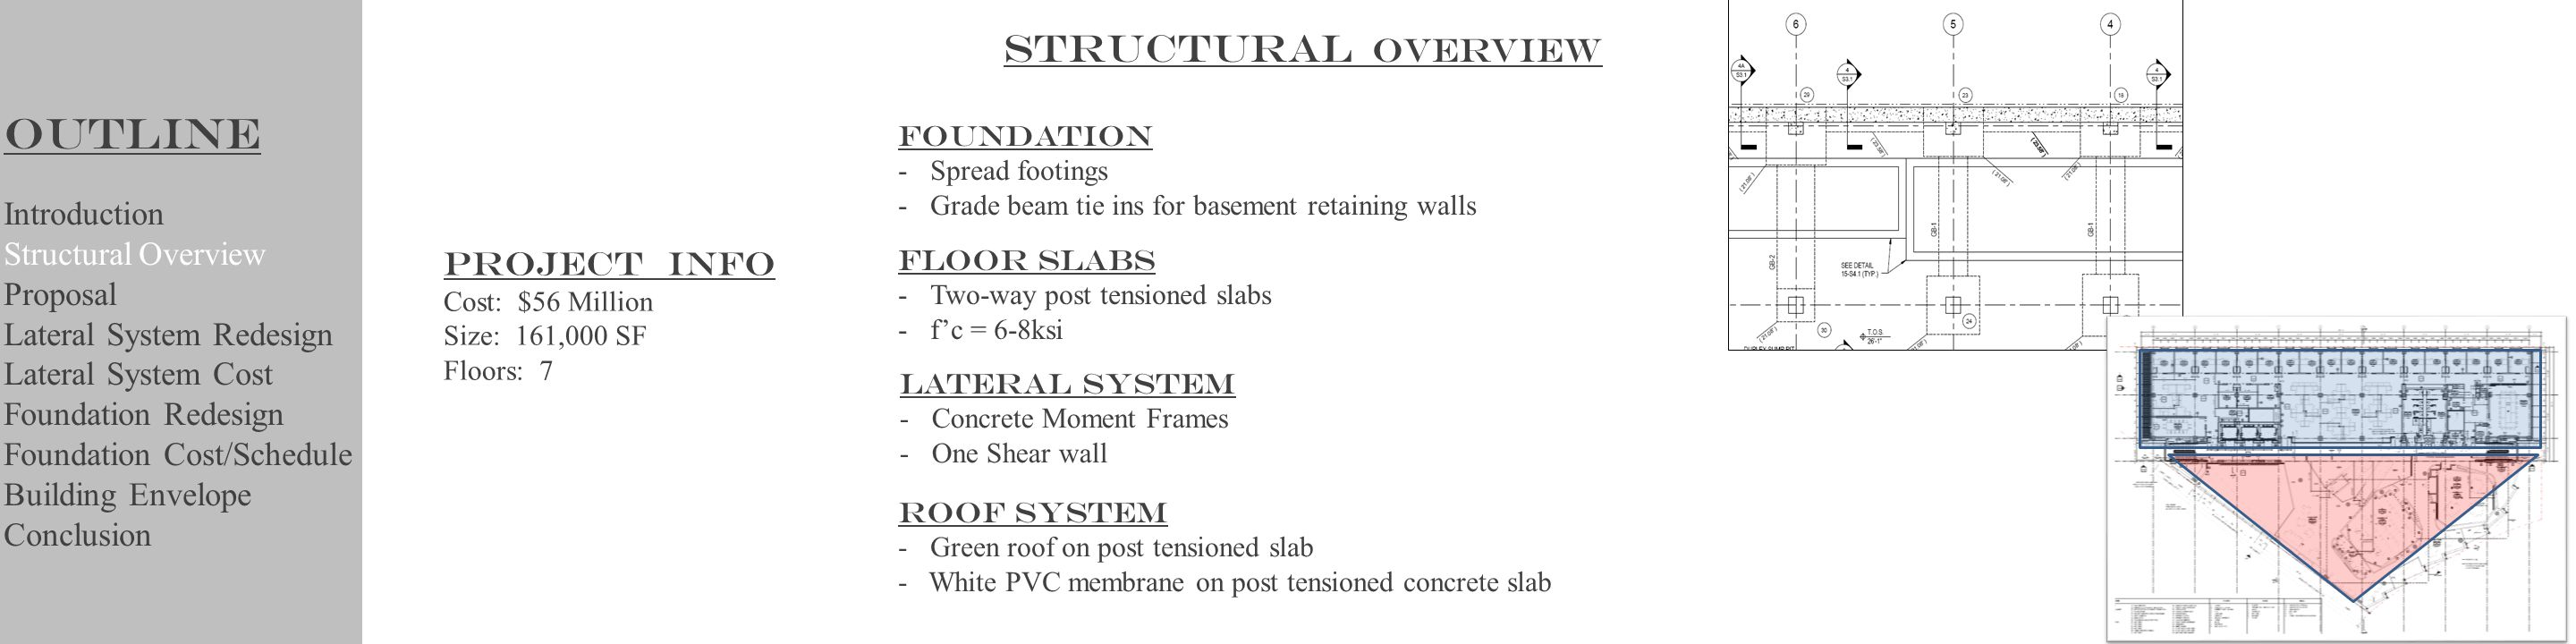 5 Outline Structural Overview Structural Overview Introduction Proposal Lateral System Redesign Lateral System Cost ...  sc 1 st  SlidePlayer & University Health Building Thesis Final Presentation - ppt download memphite.com